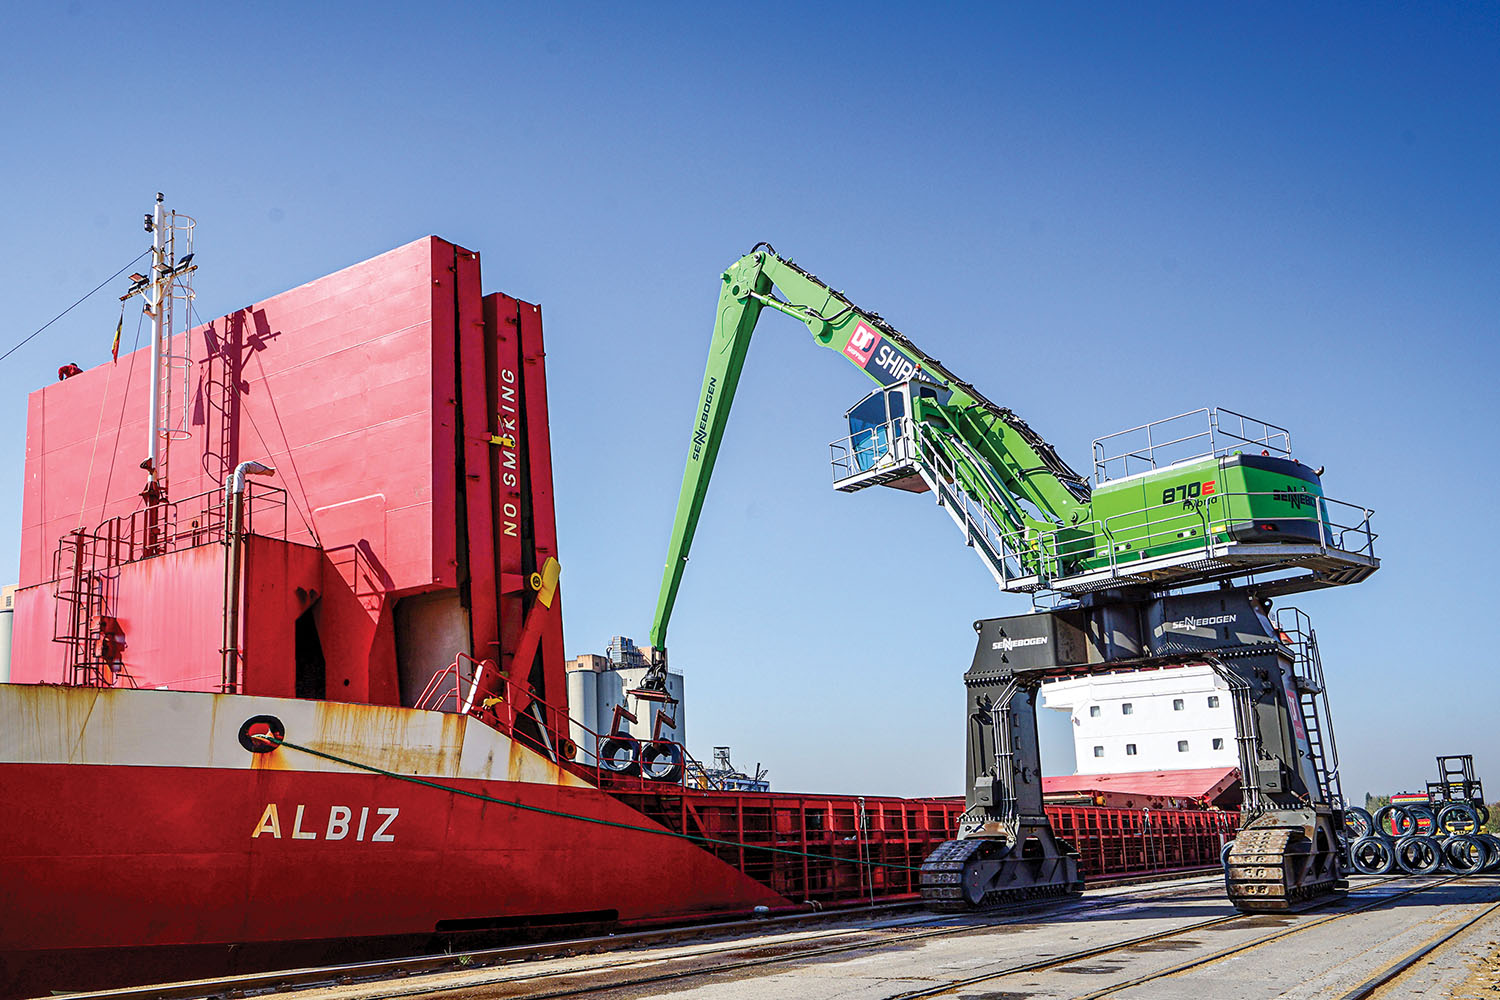 DD Shipping NV recently chose a Sennebogen 870 Hybrid E-Series material handler on a crawler crane for its newly opened second dock at its Puurs facility, between Antwerp and Brussels in Belgium.